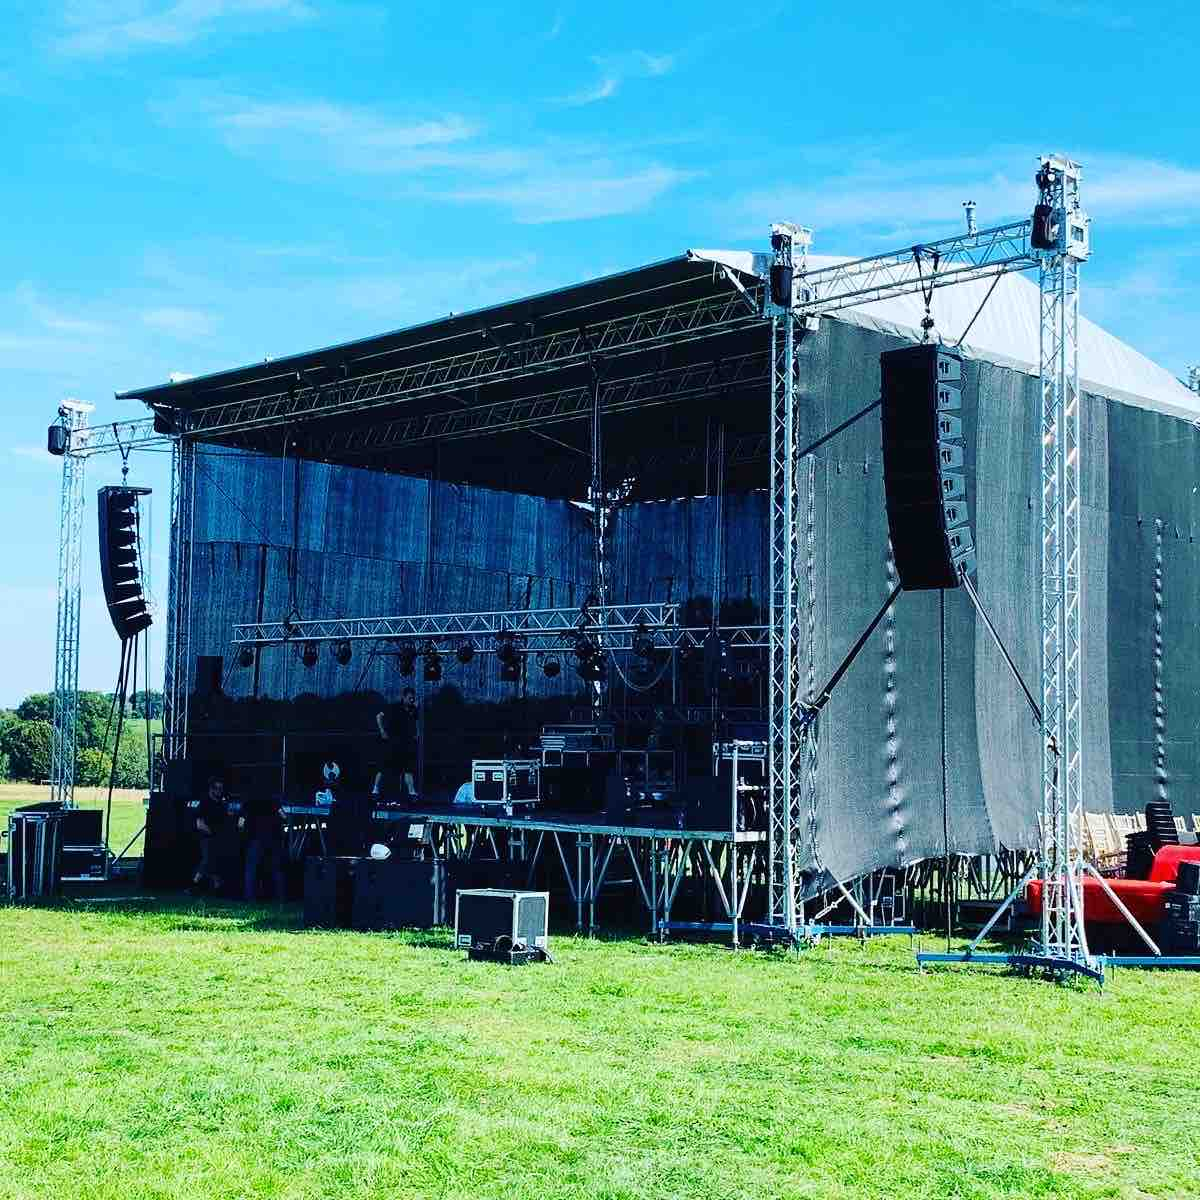 Heathrow Stage Hire